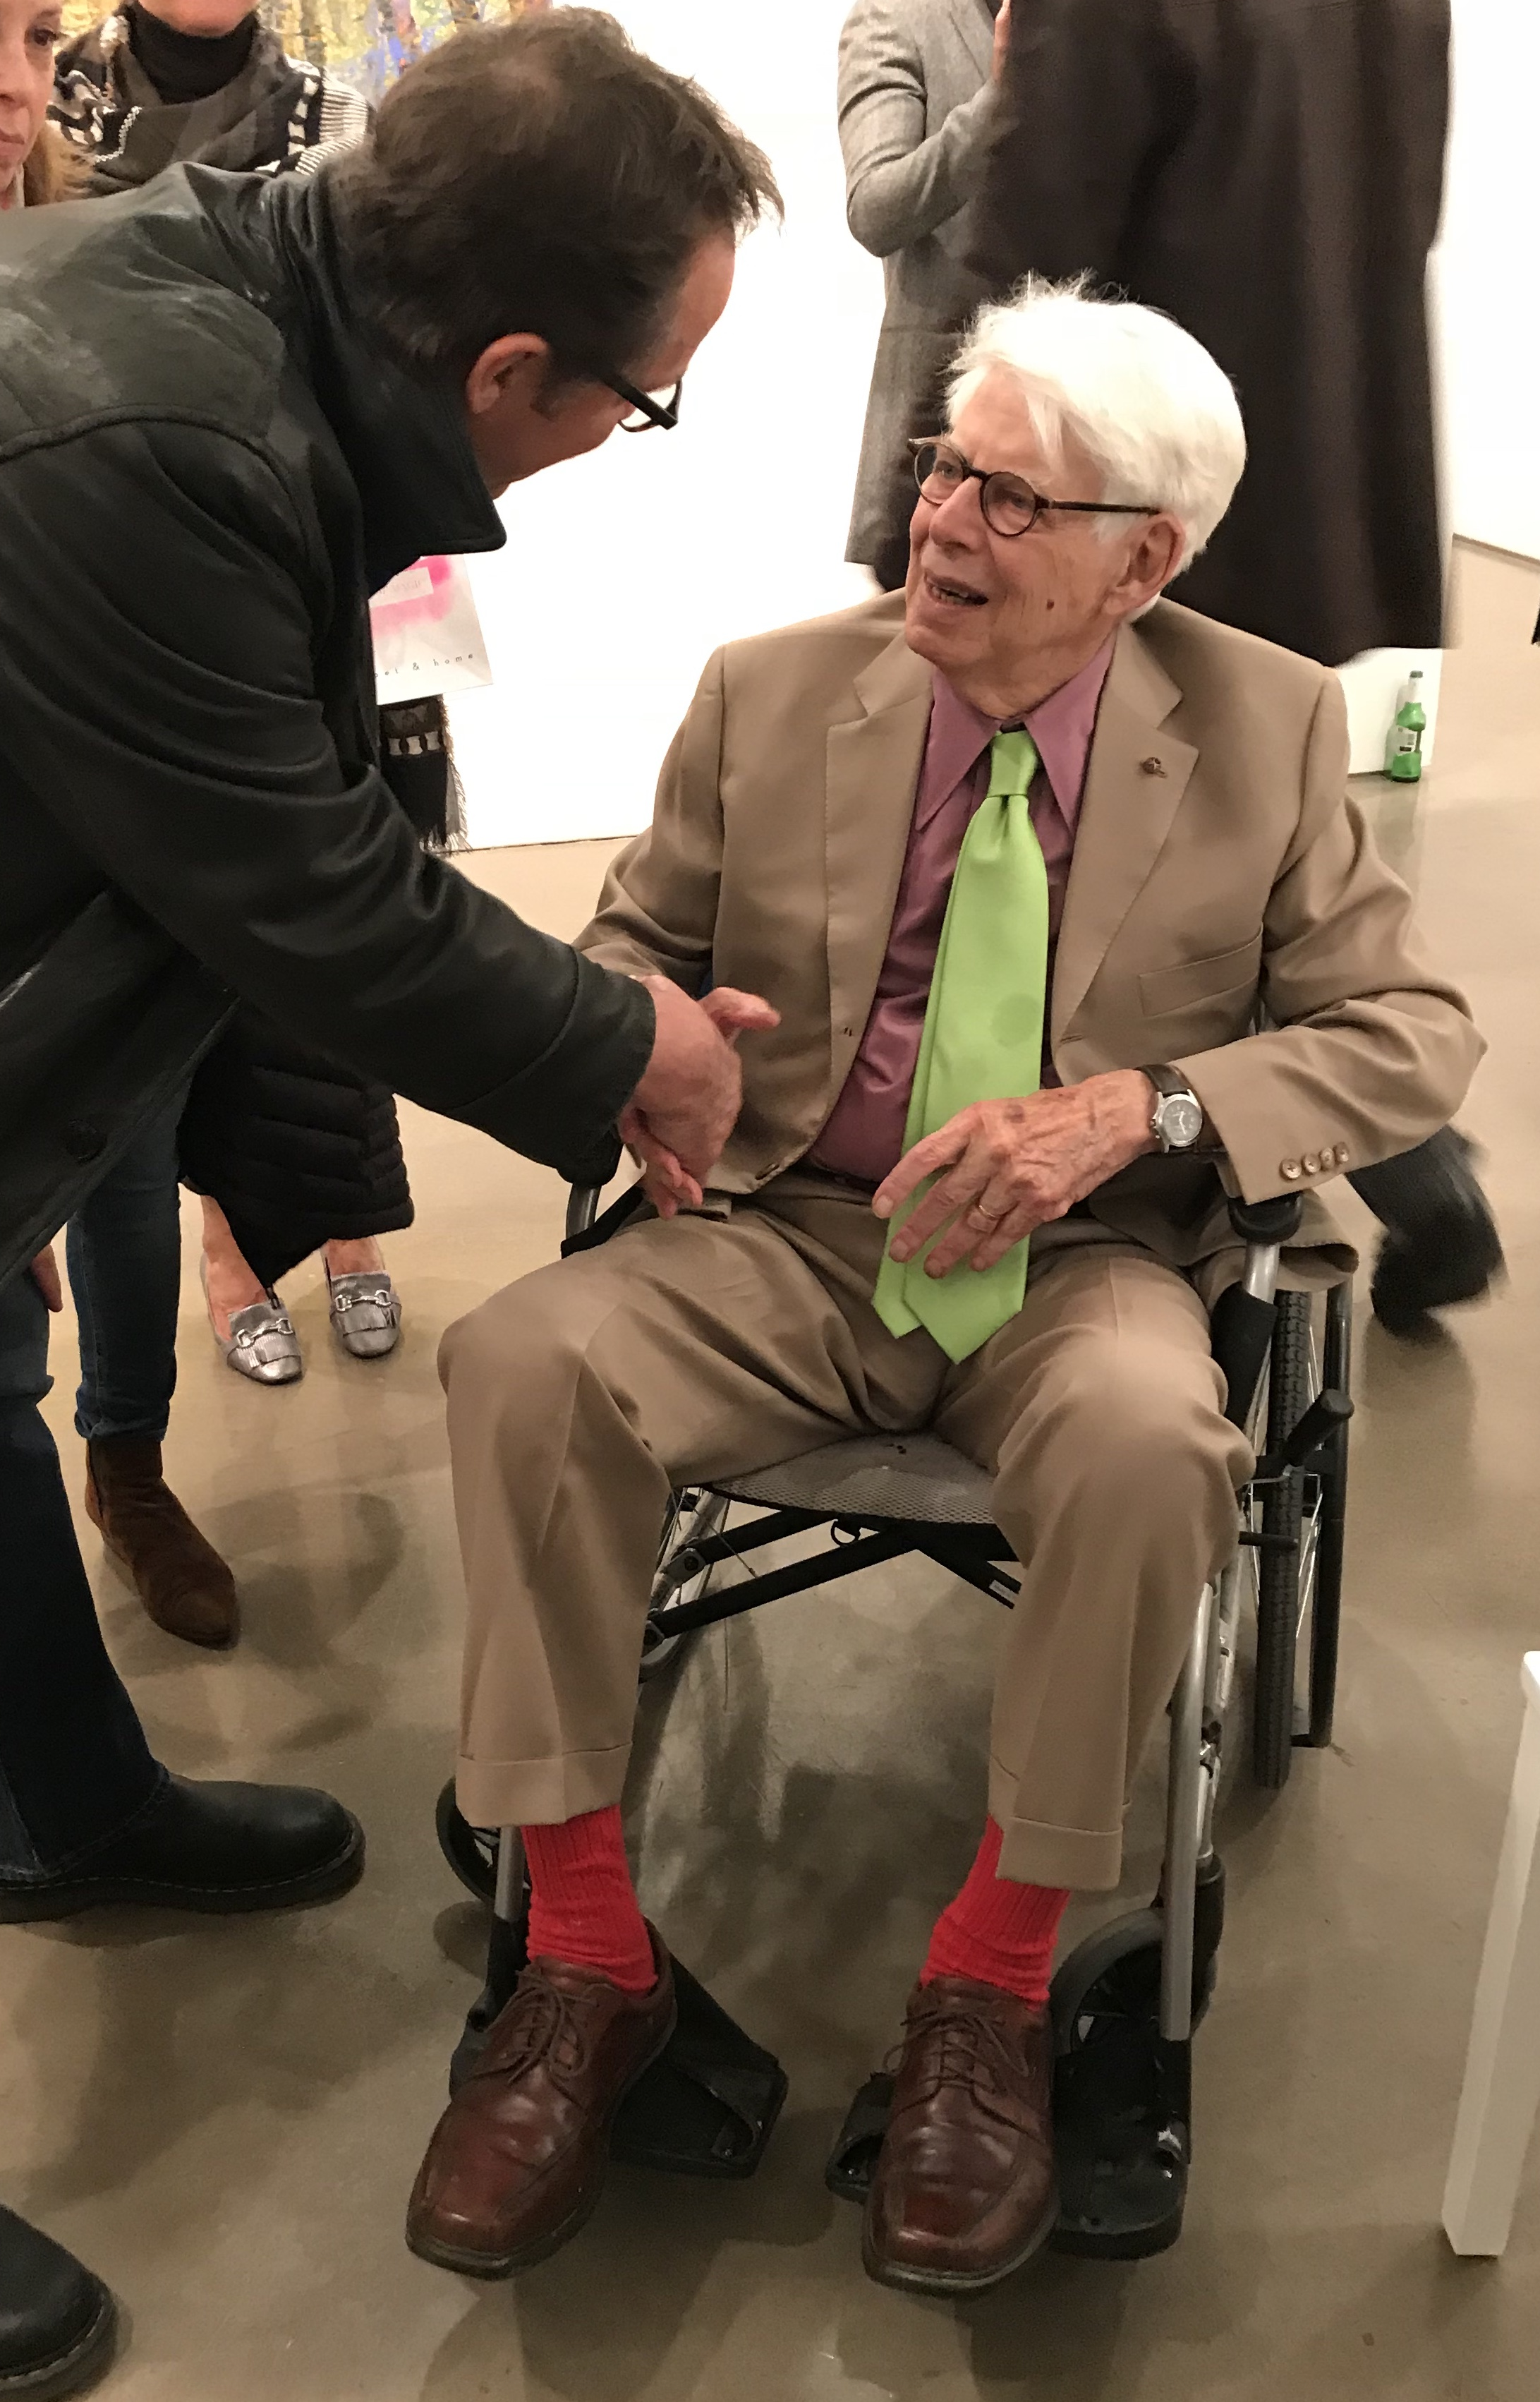 Rick meets Wolf Kahn at The Miles McEnery Gallery November 16, 2017